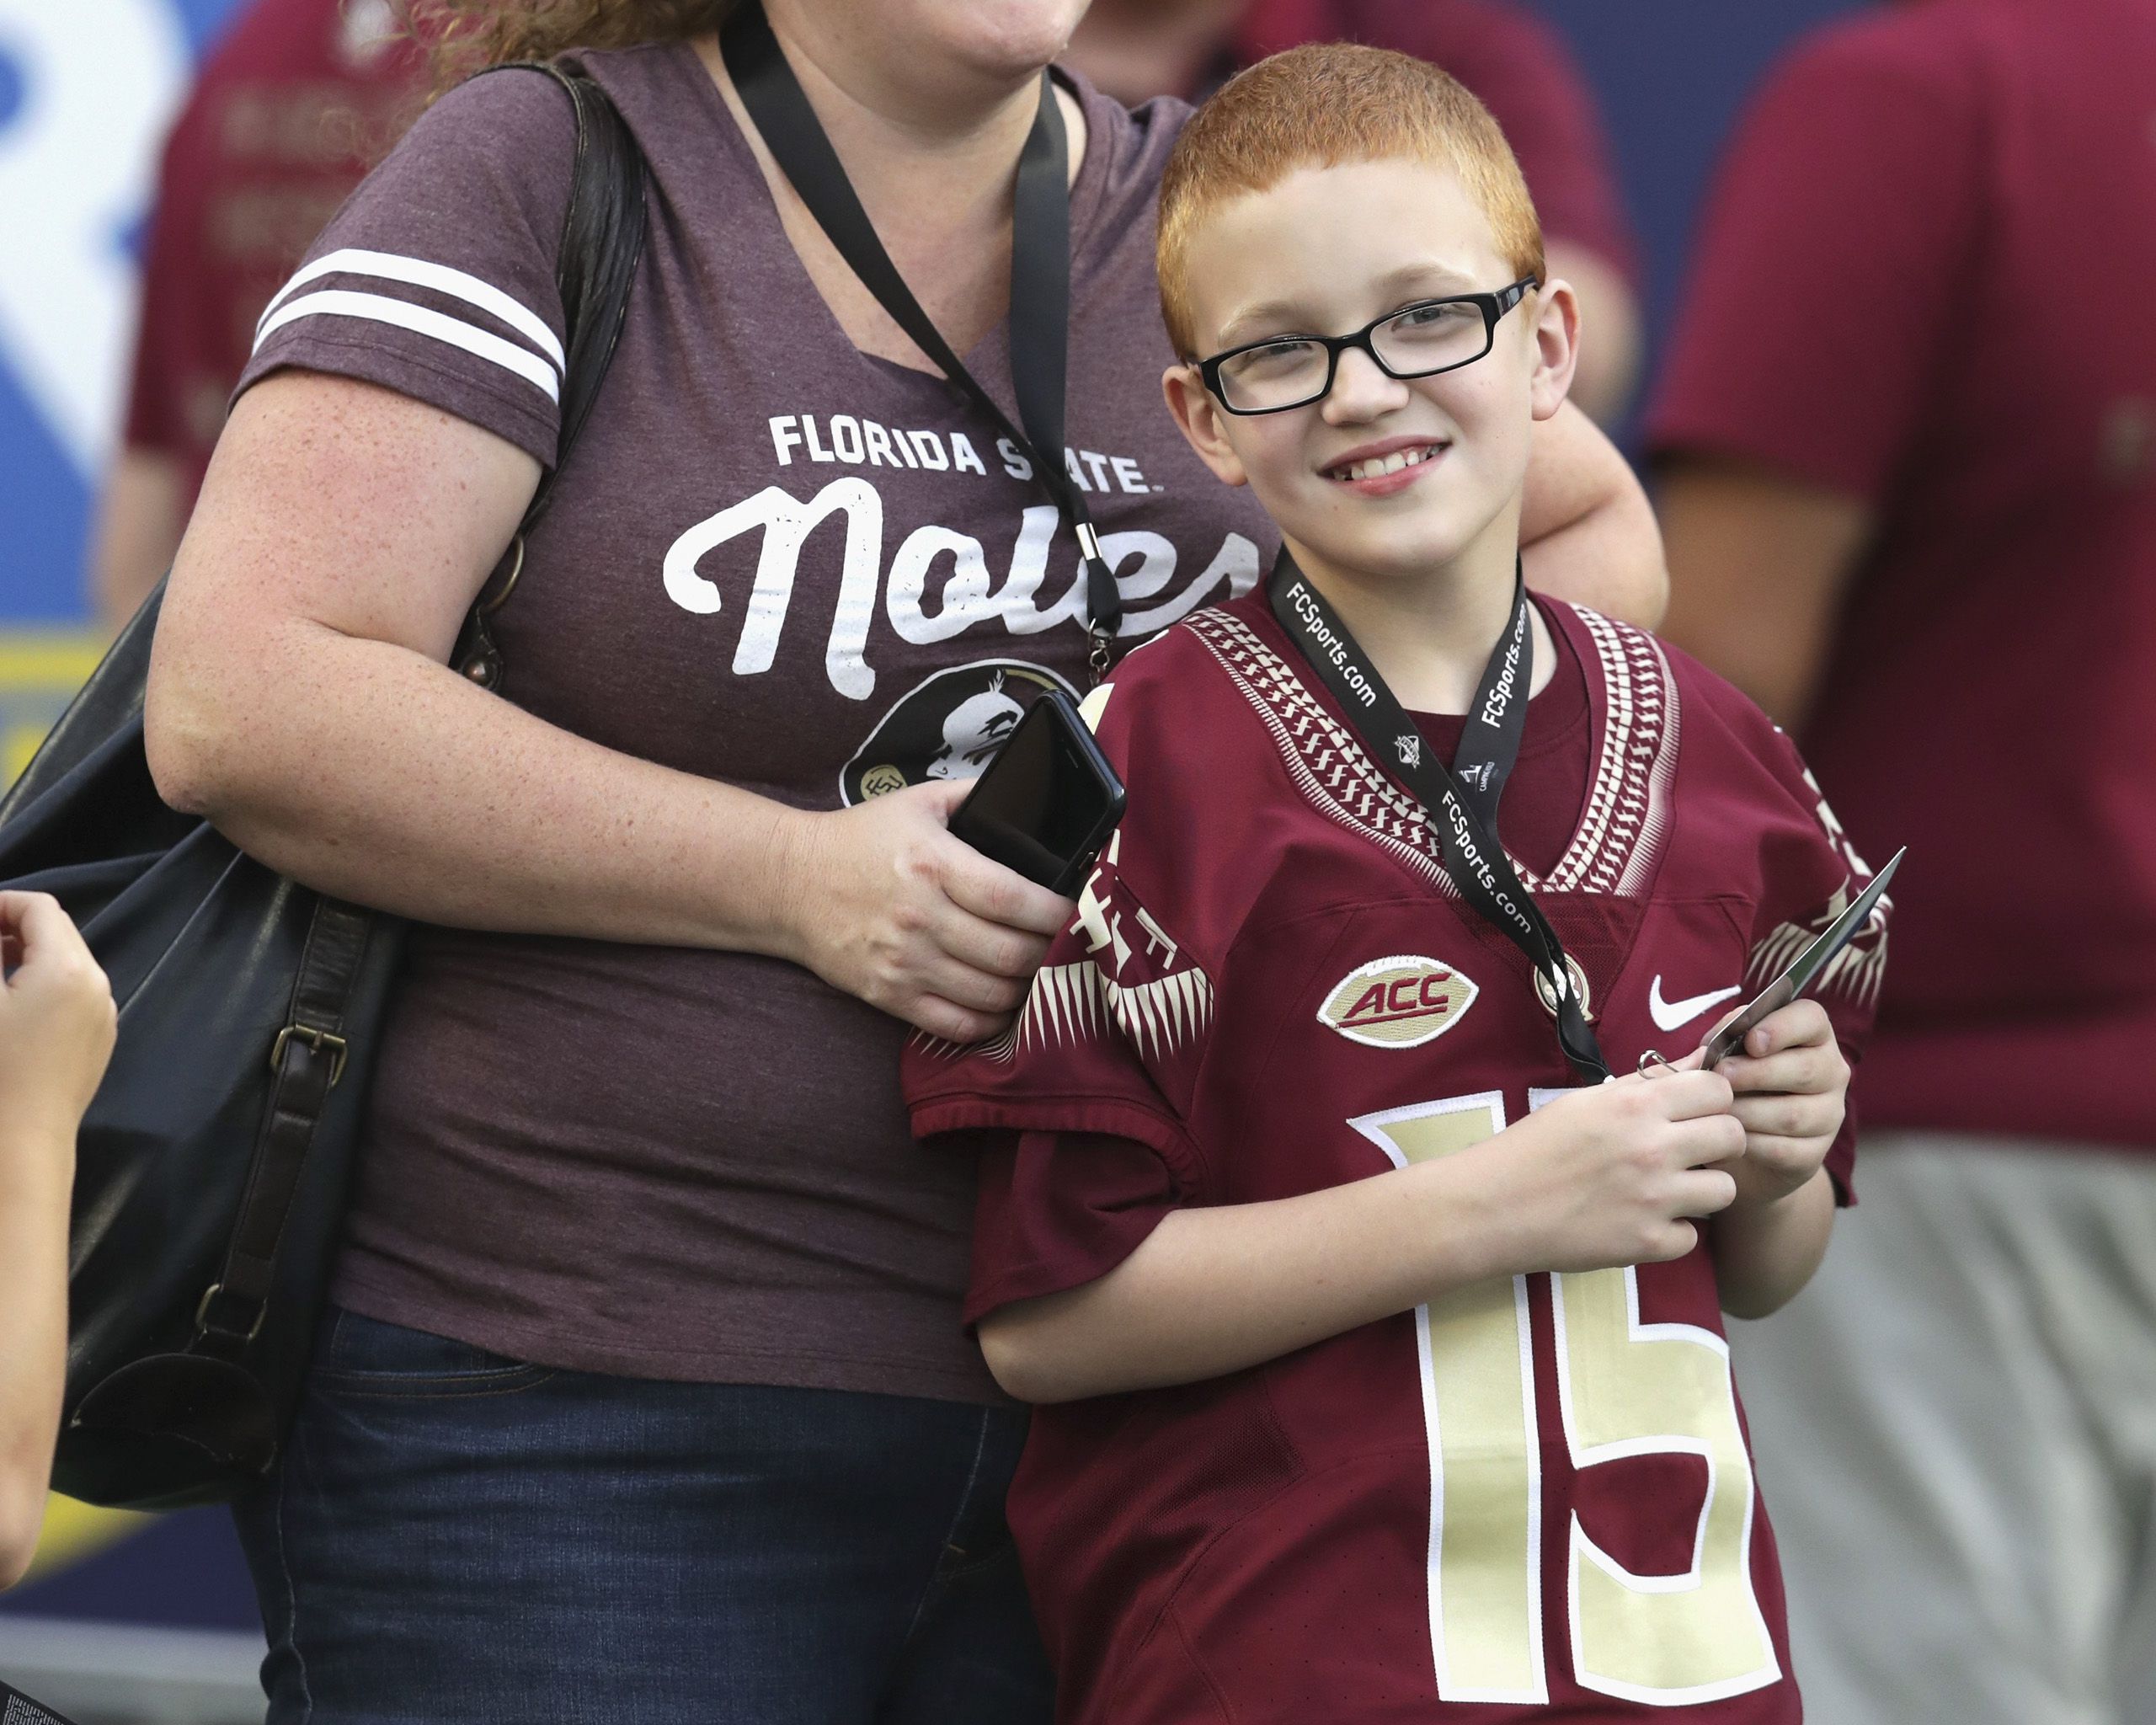 Bo Paske and mother Leah Paske are seen on the sideline prior to the Camping World Kickoff between the Florida State Seminoles and the Mississippi Rebels at Camping World Stadium in Orlando on Sept. 5, 2016.